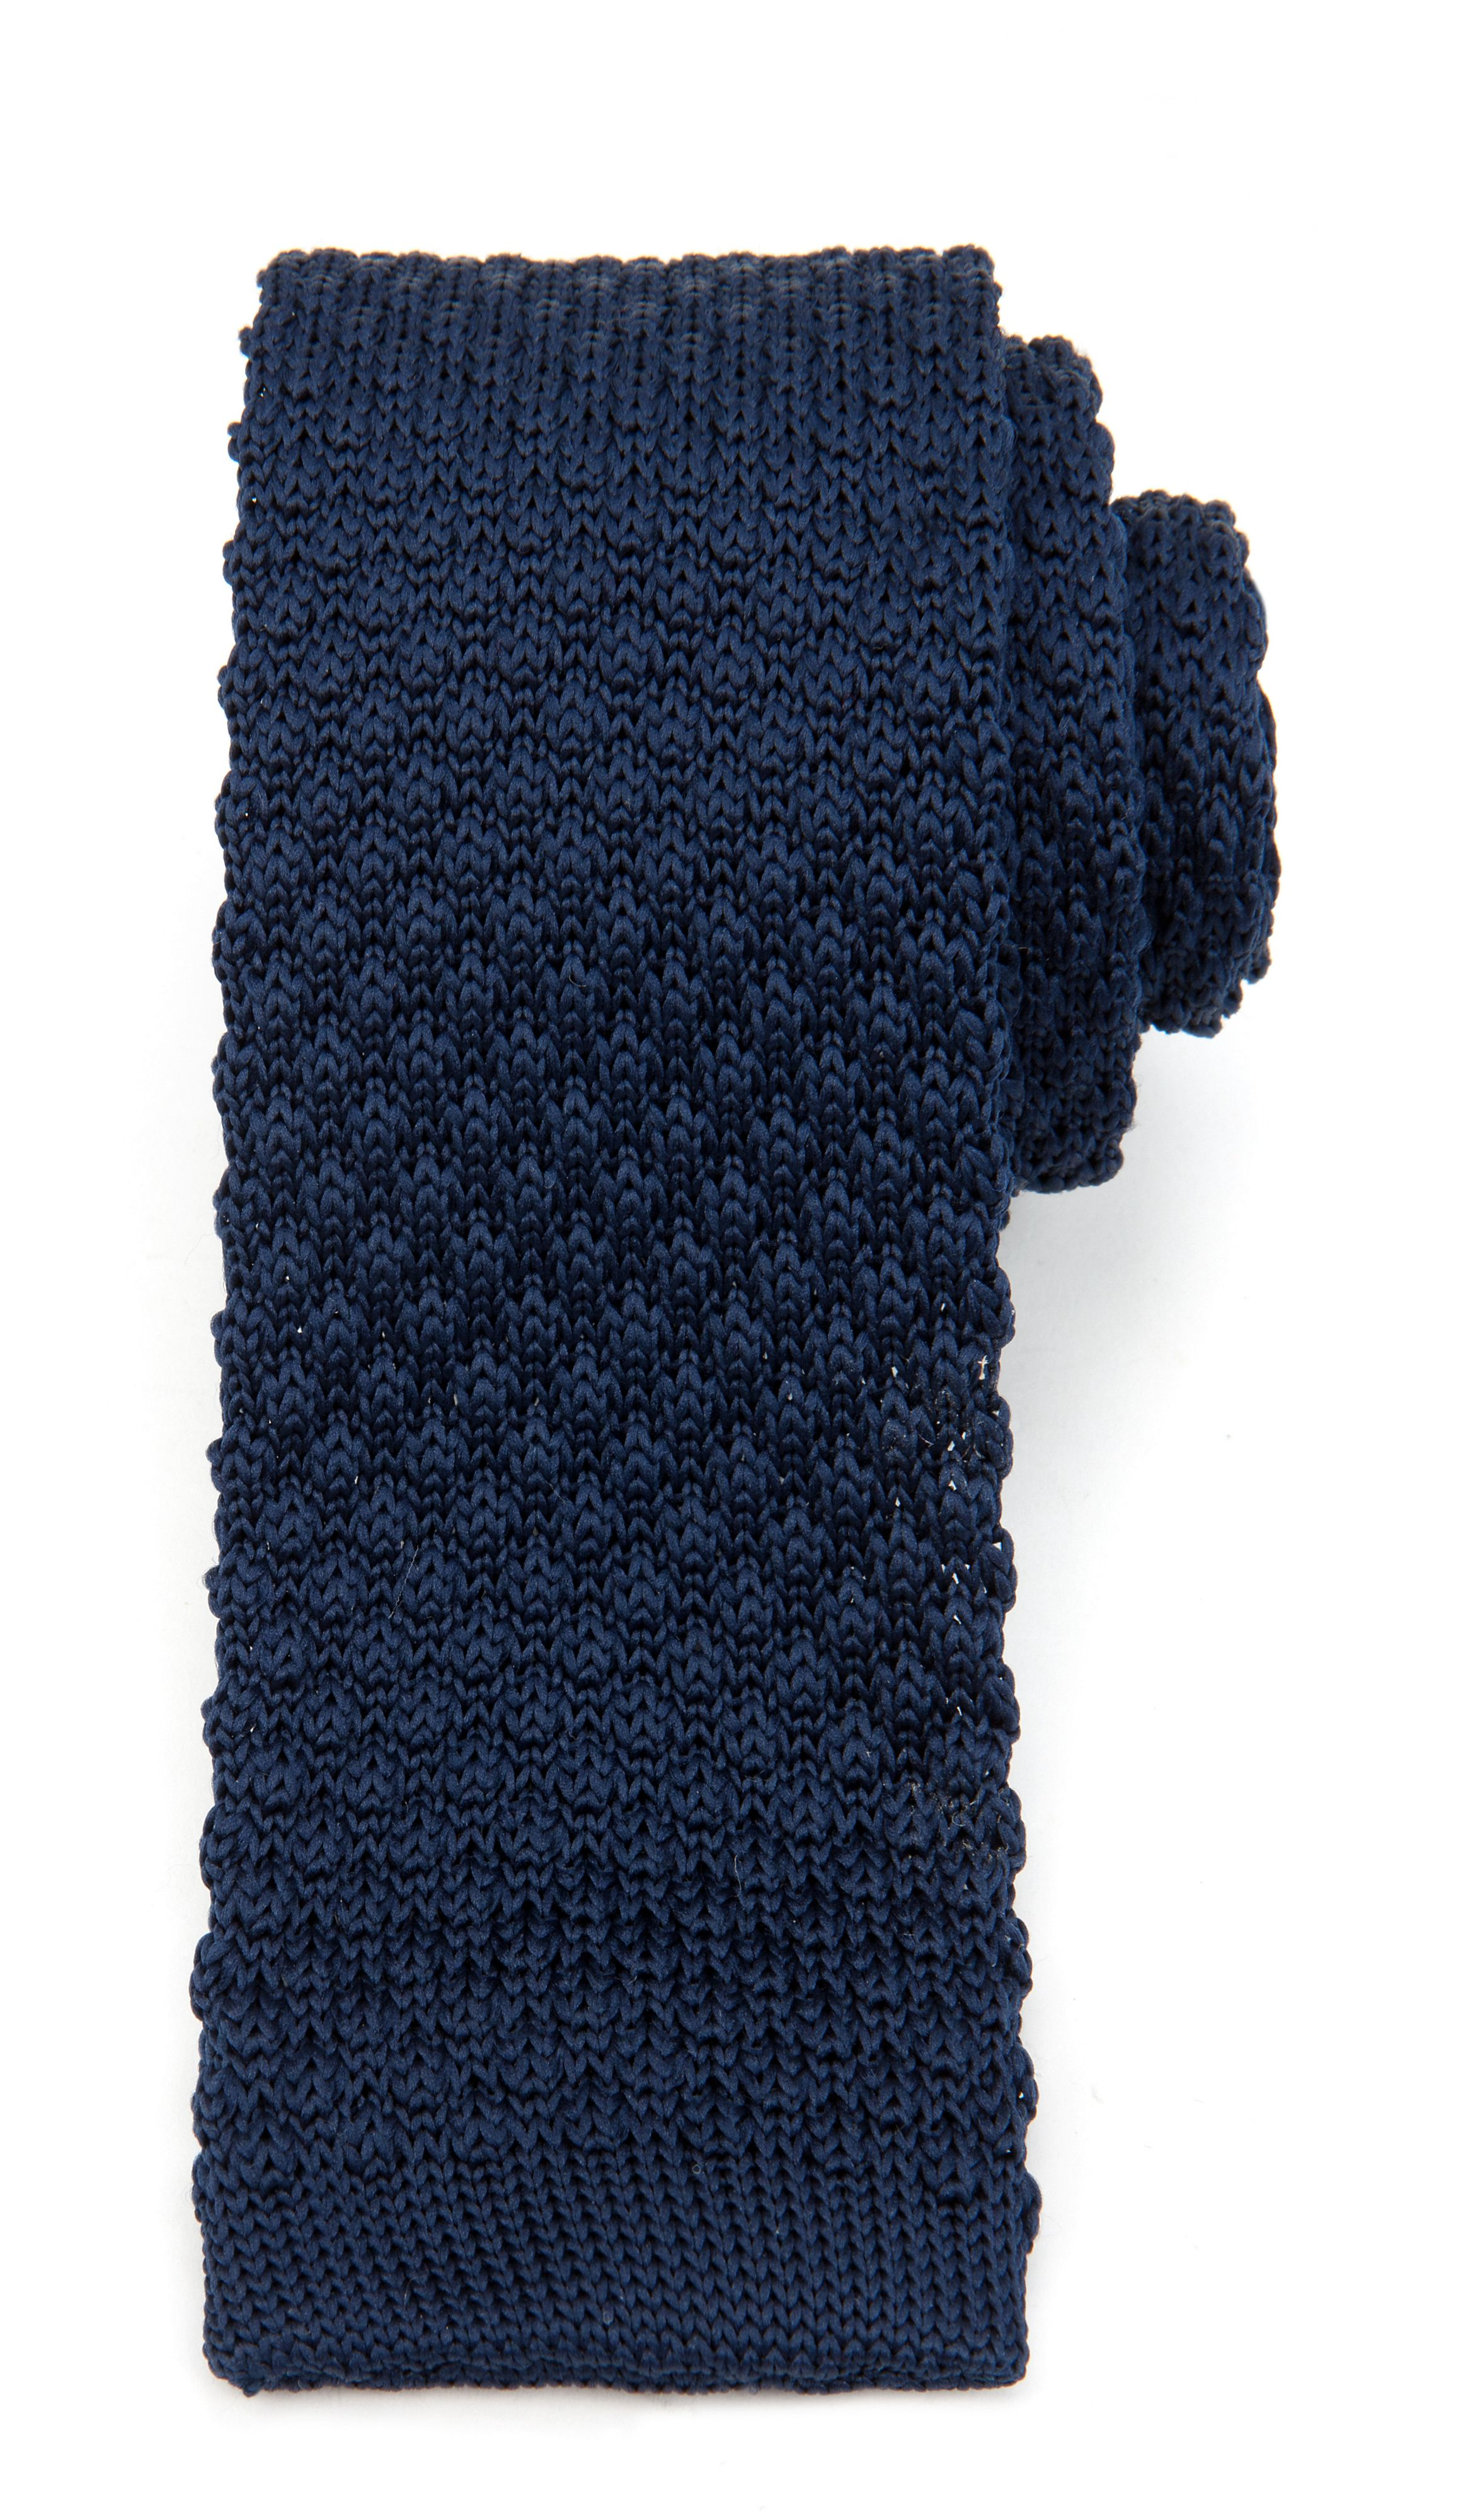 Catalan plain knitted tie